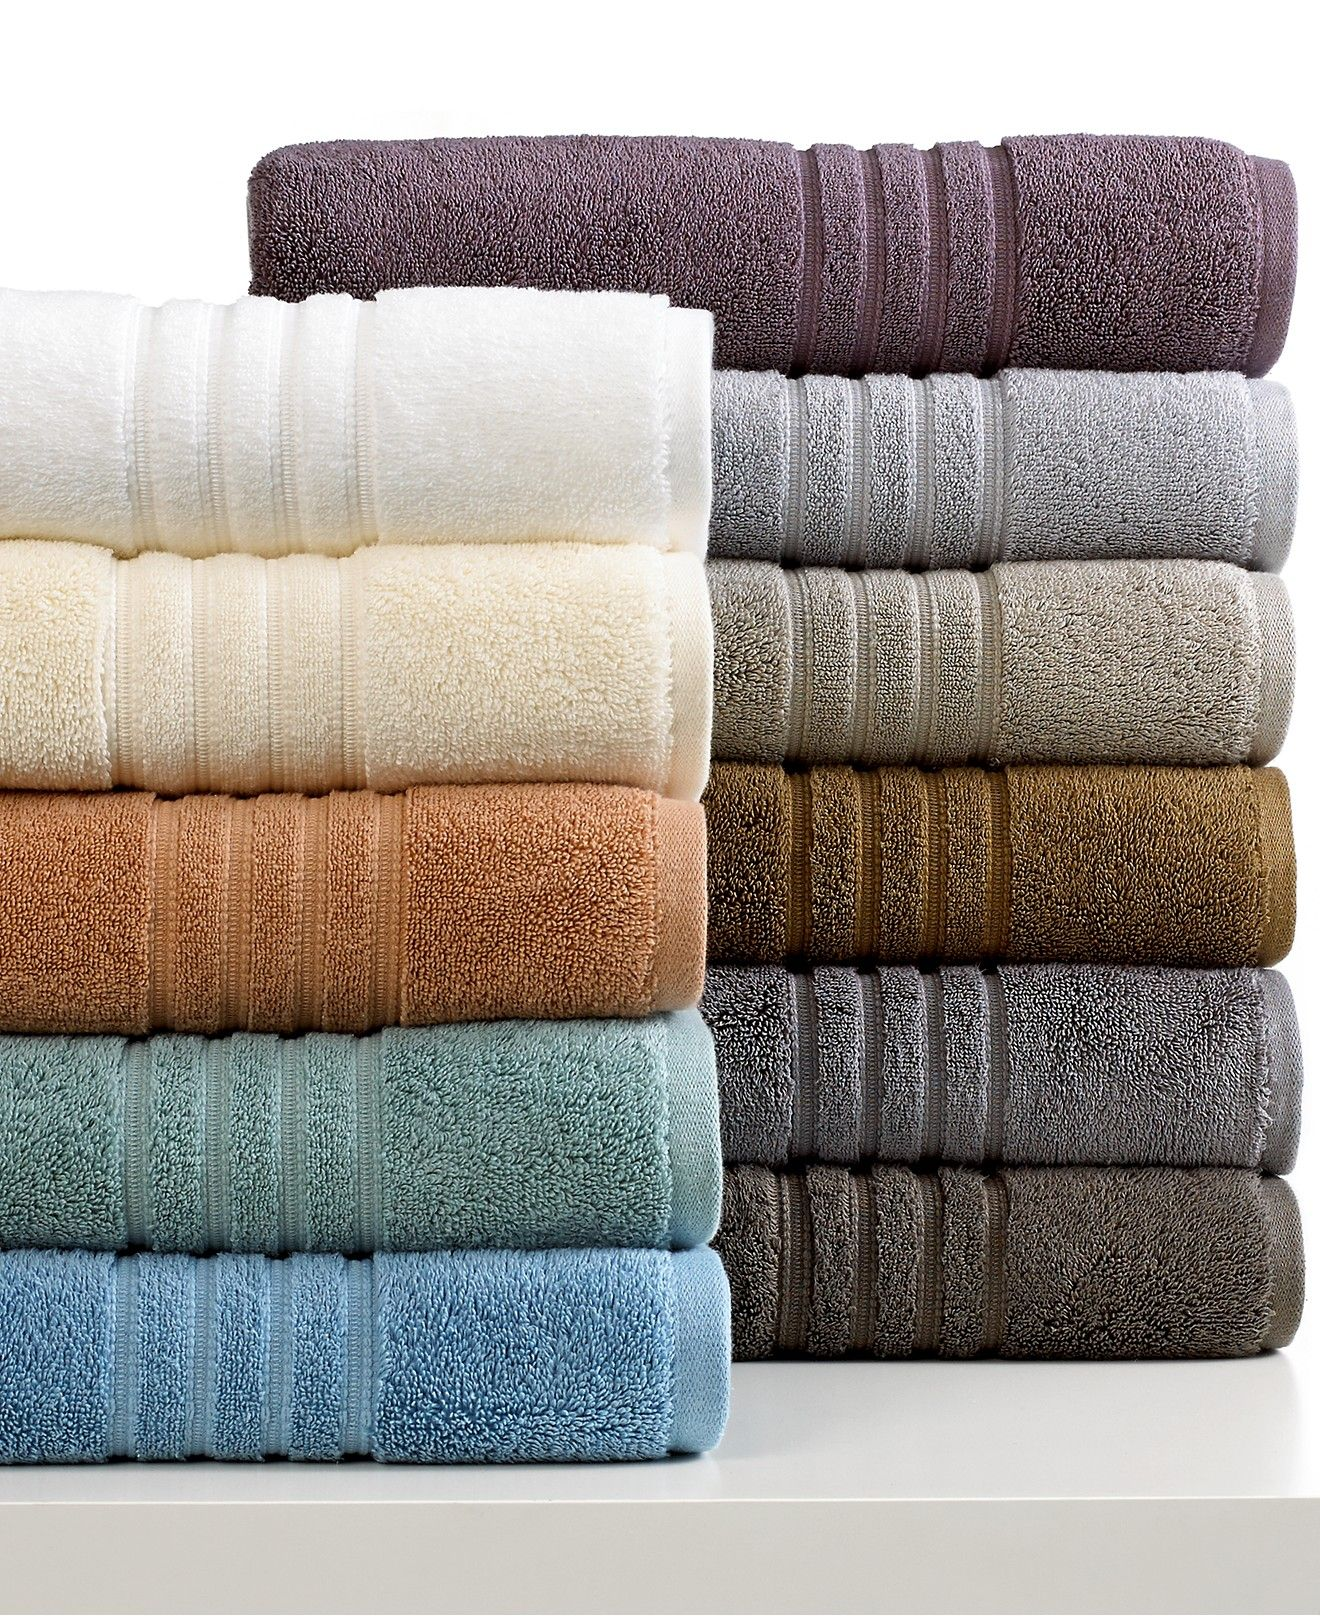 Charisma Bath Towels Awesome Hotel Collection Microcotton® Luxe Bath Towel Collection  2 White Inspiration Design